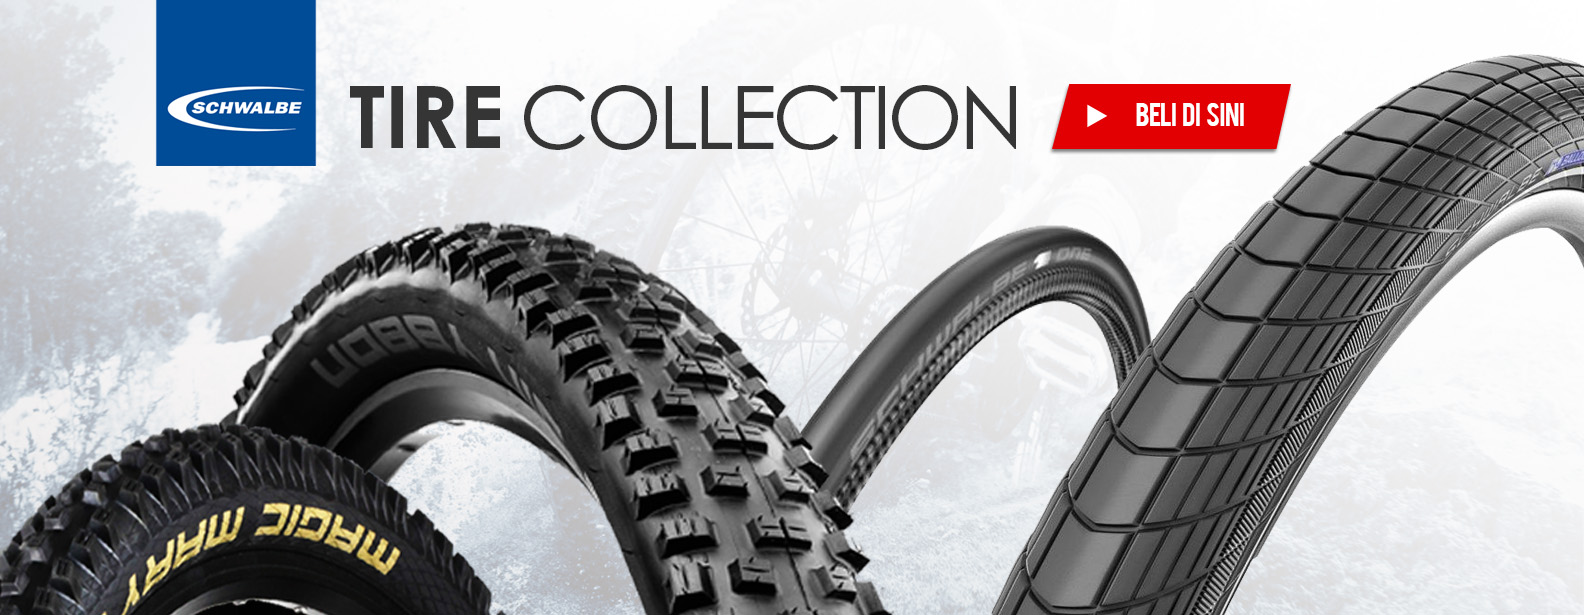 Schwalbe Tire Collection